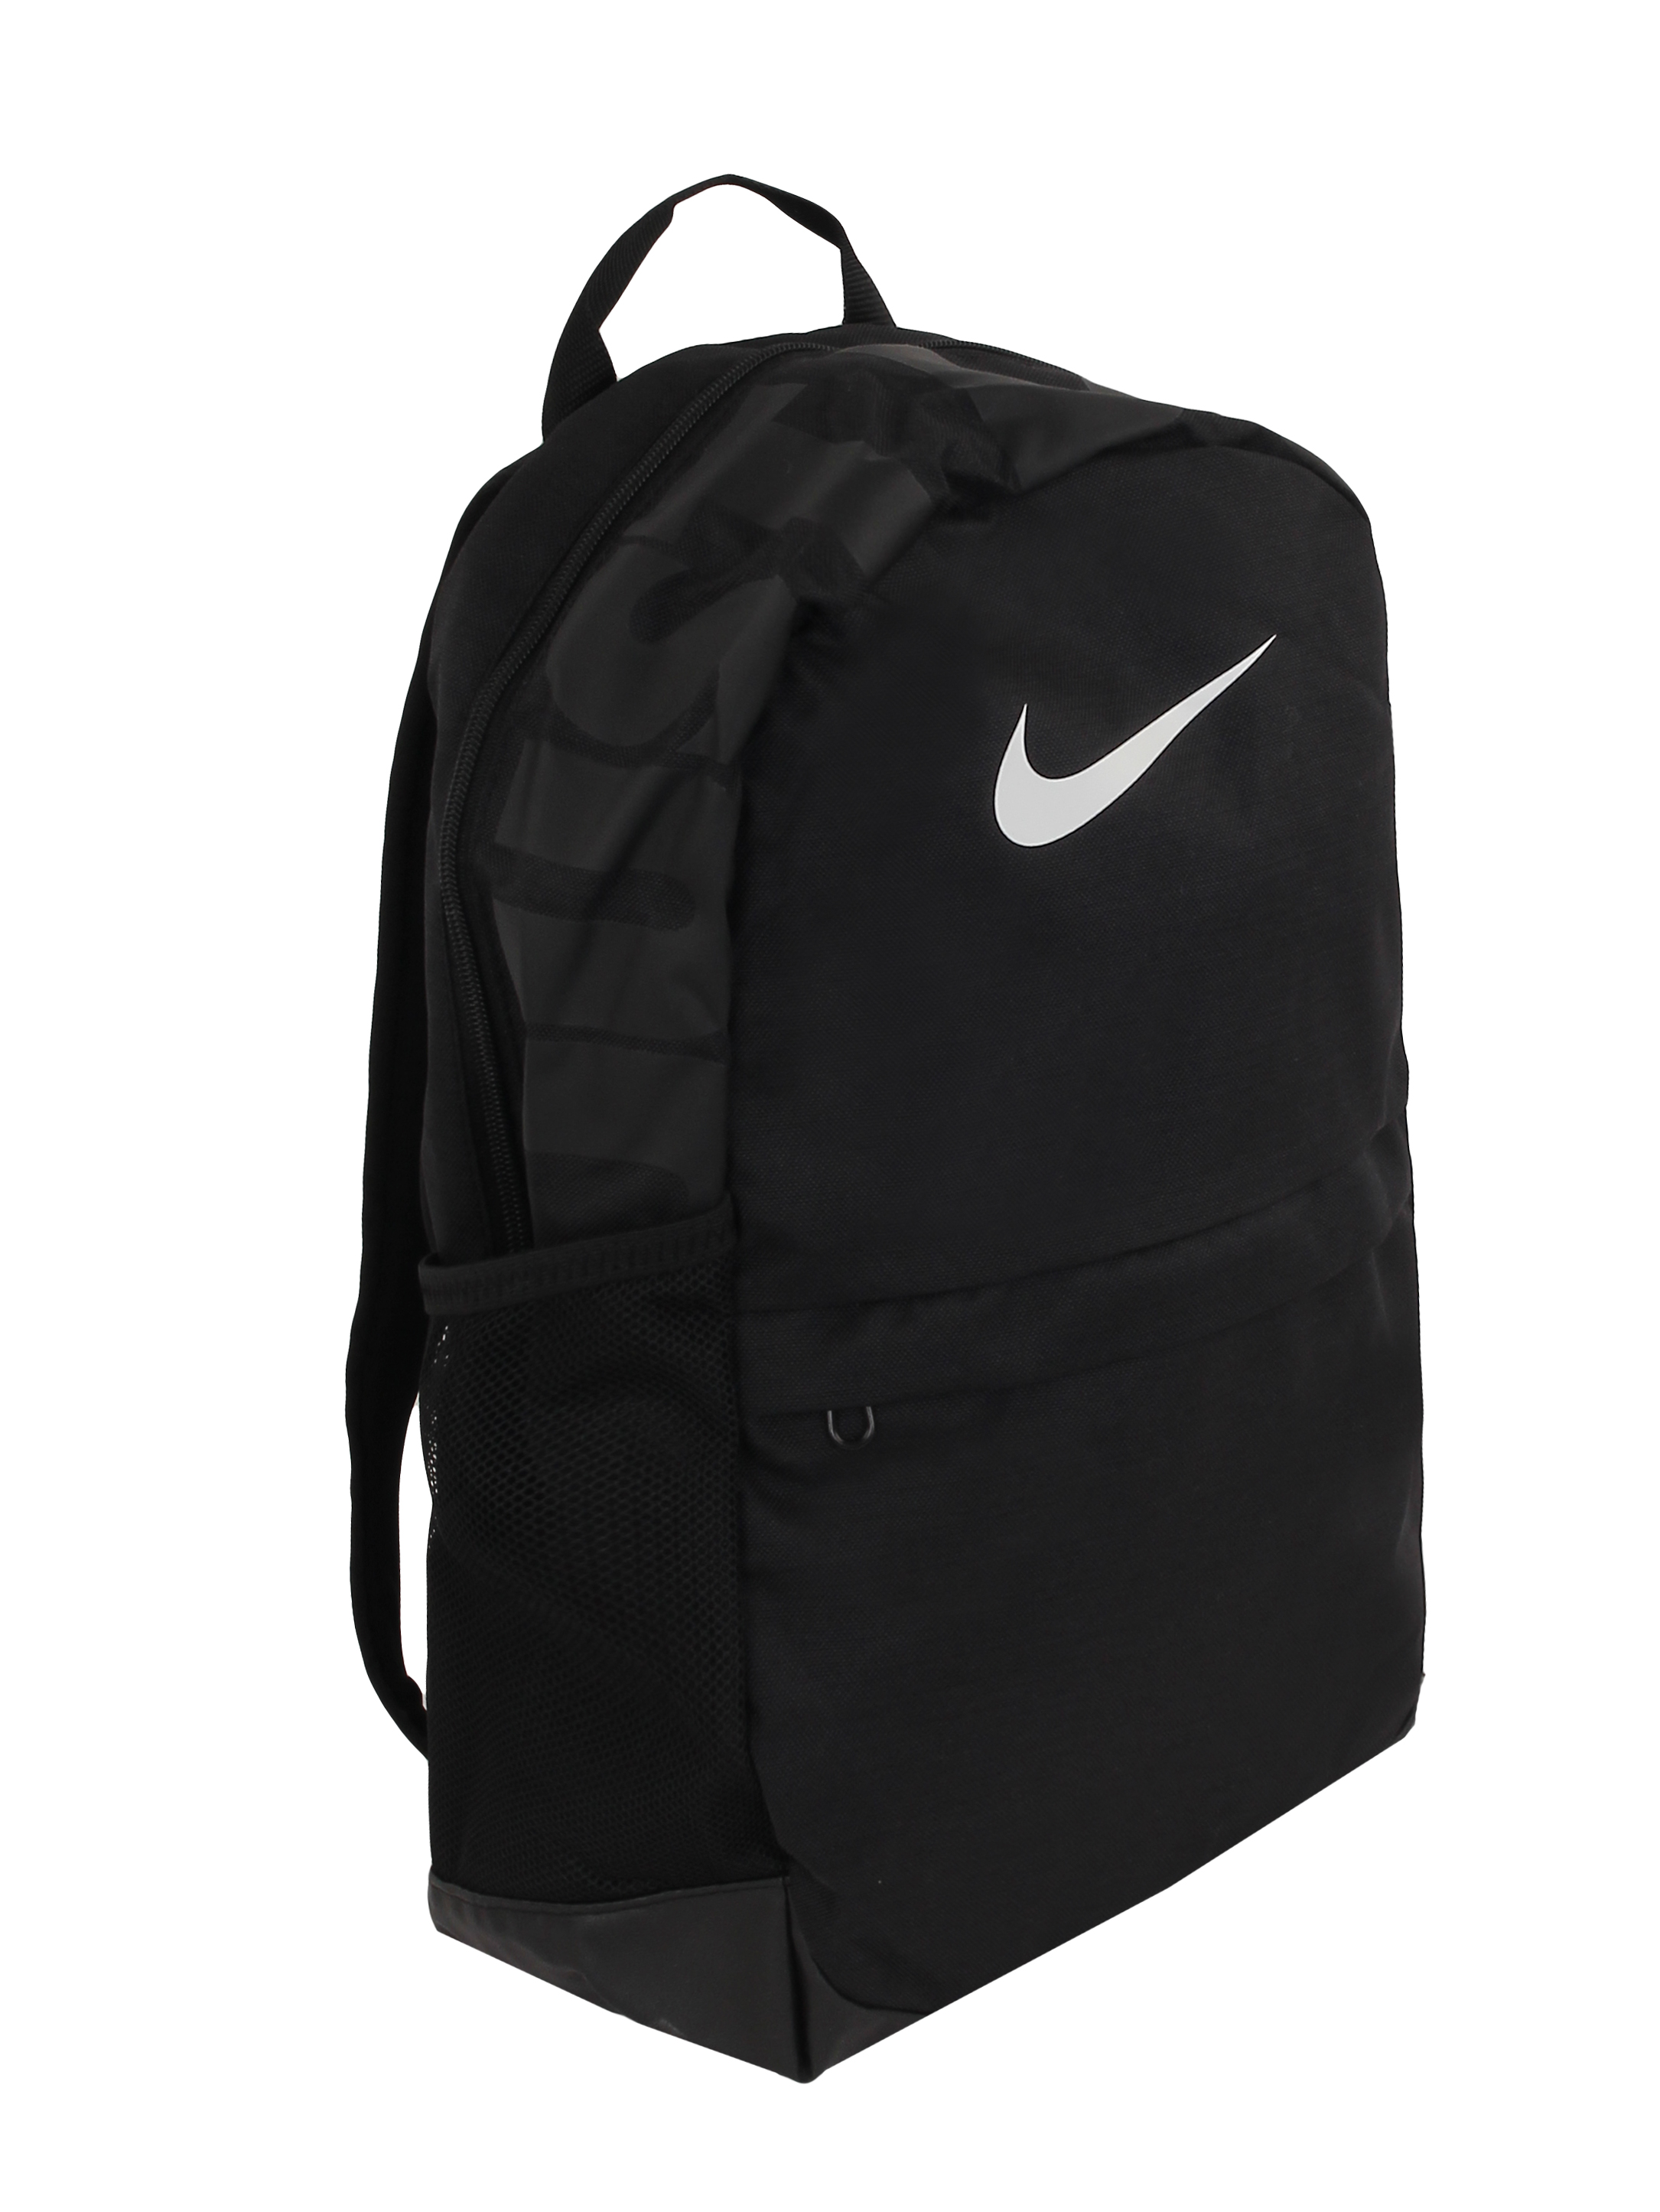 81b0b690f8b3 Рюкзак Nike Brasilia Backpack